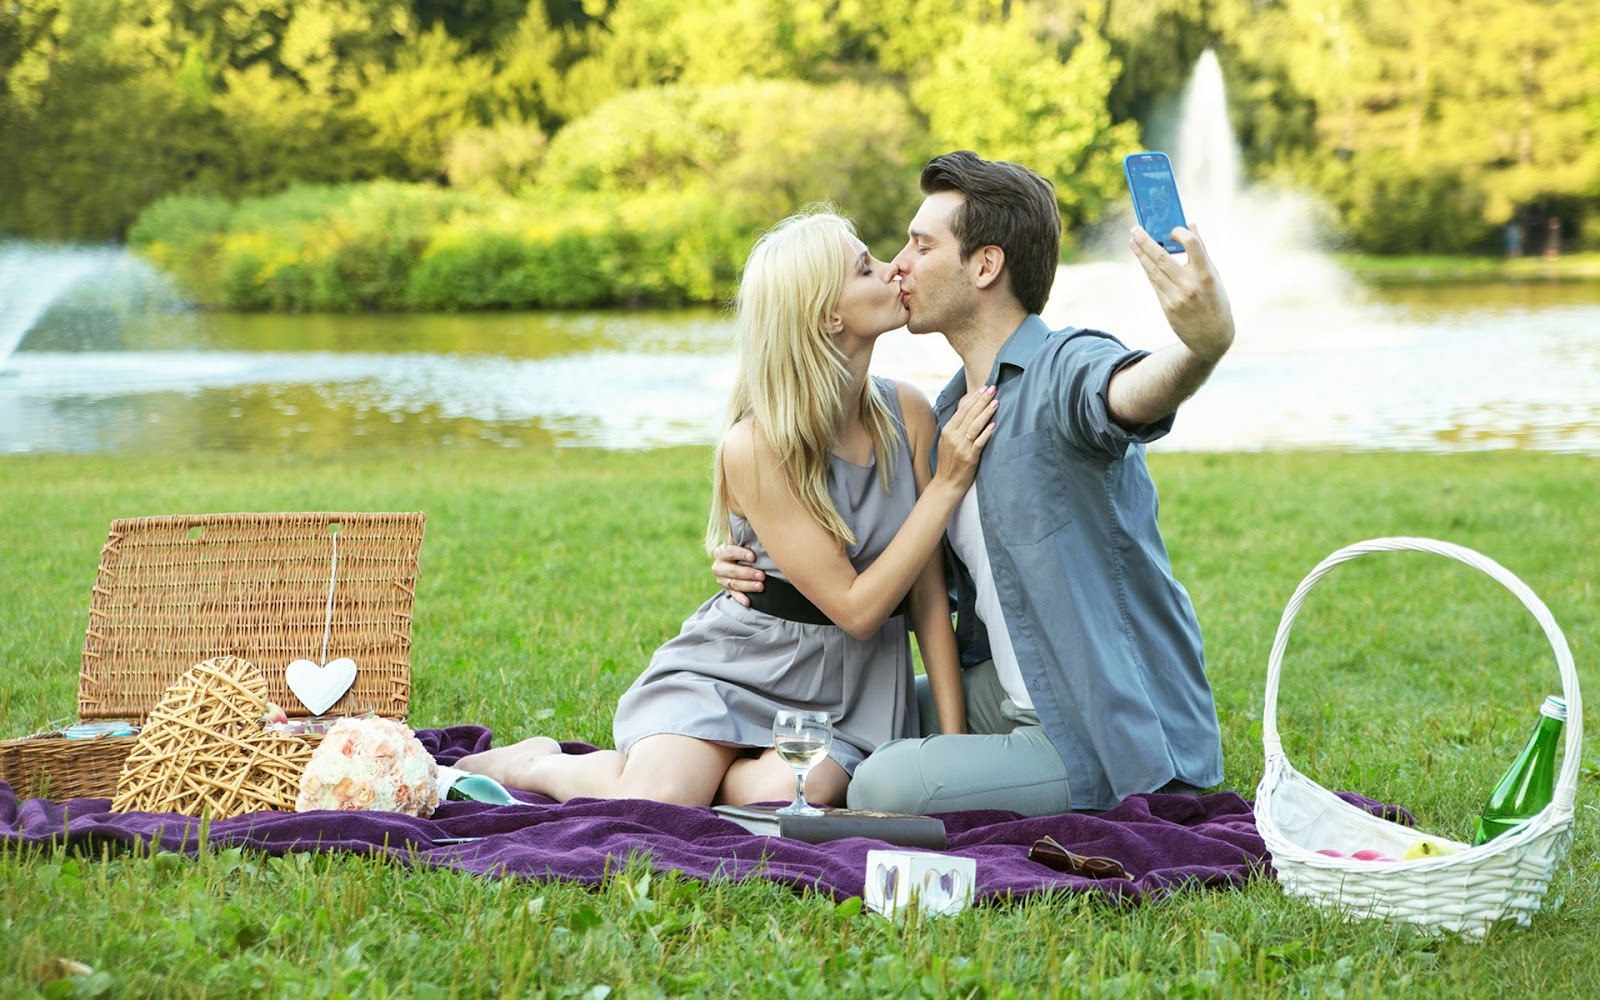 Hot Couple Kissing 1080P Hd Wallpapers  Images  Hd -7343